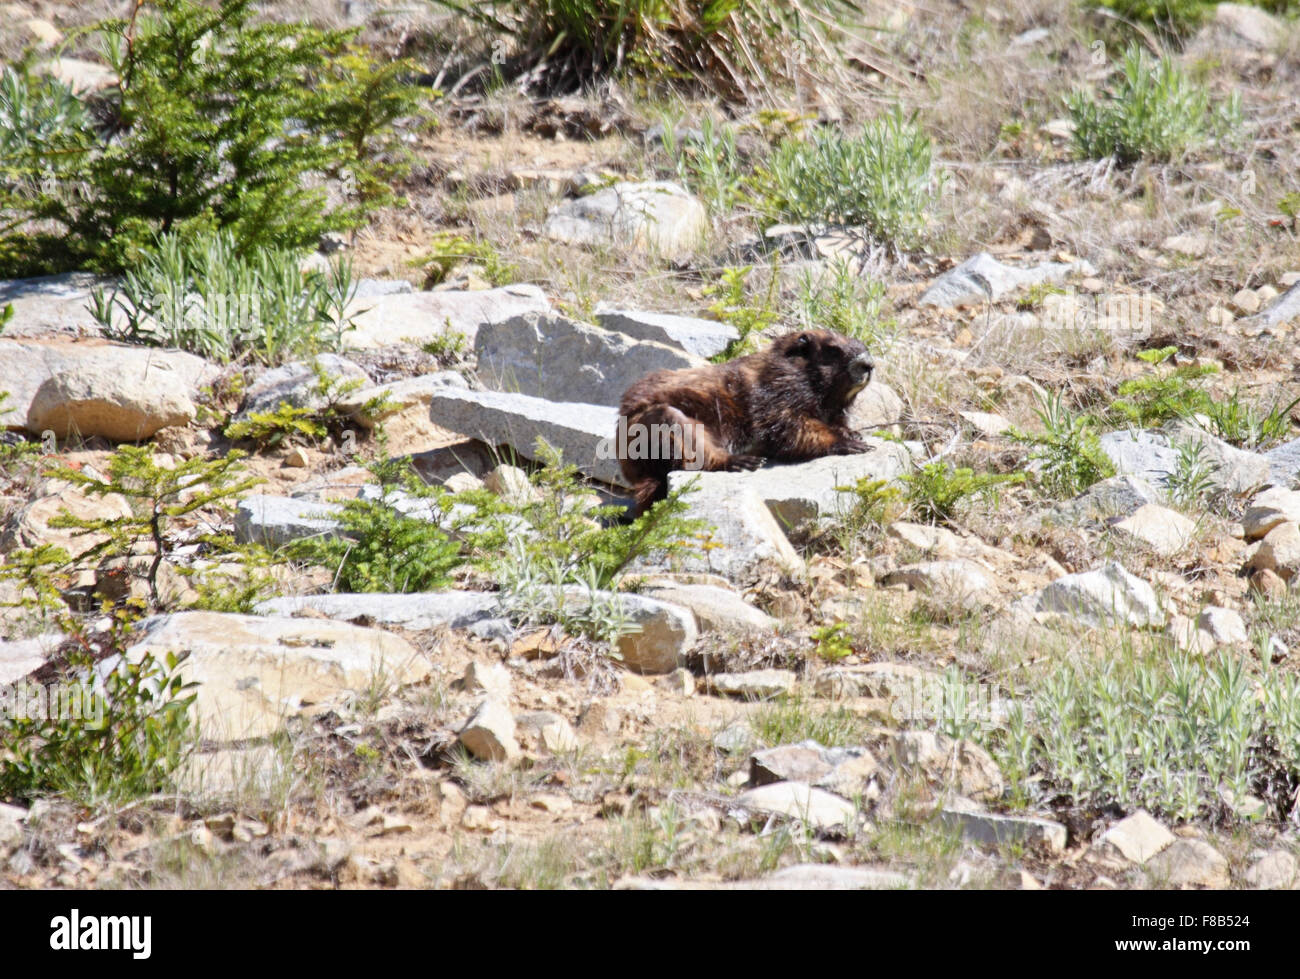 Vancouver Island Marmot on mountainside in Canada - Stock Image